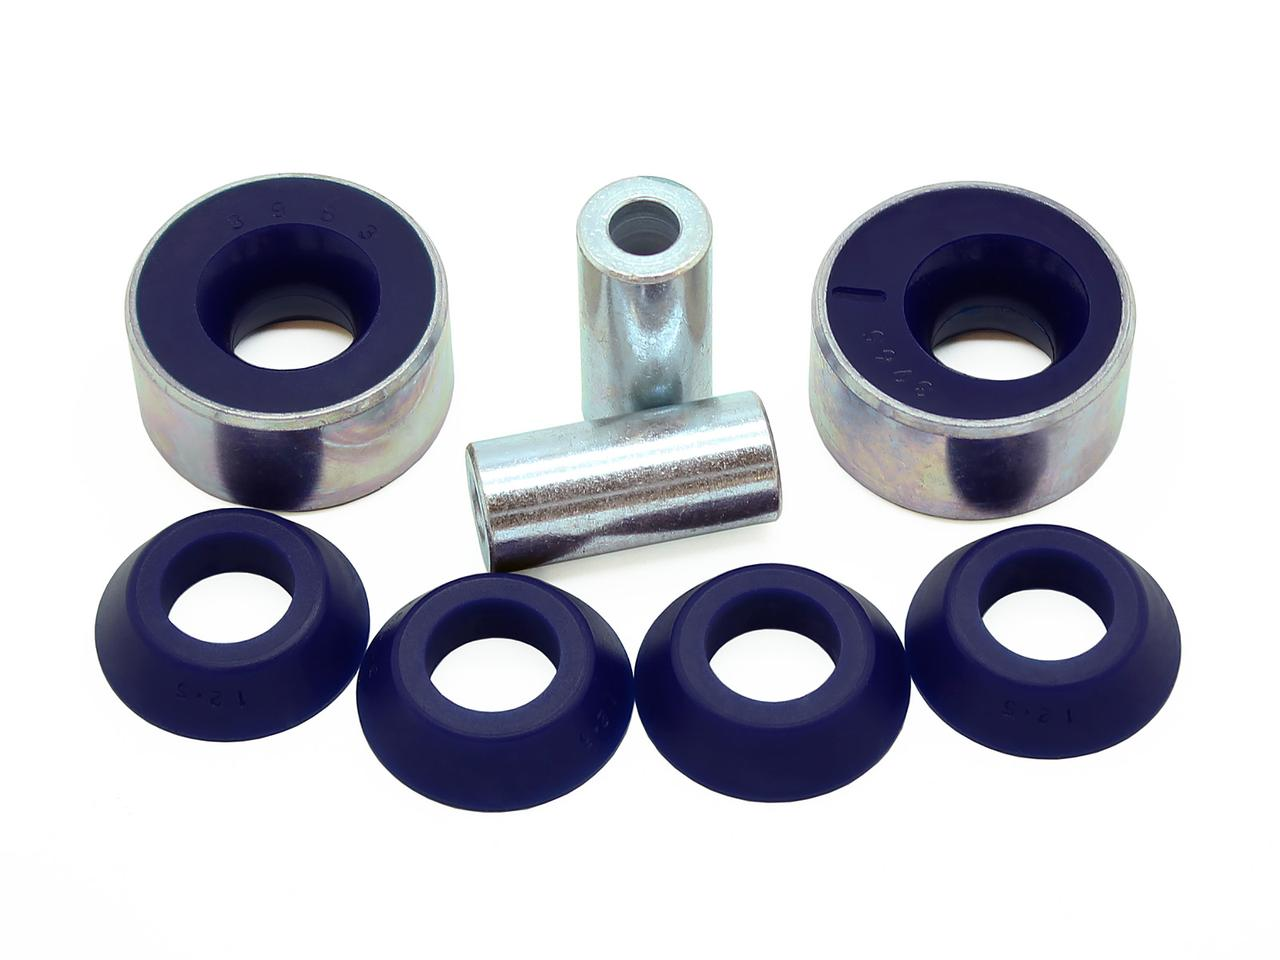 Renault Megane Mk2 SuperPro Control Arm Lower-Rear Bush Kit: Steering-Pull Correction Kit